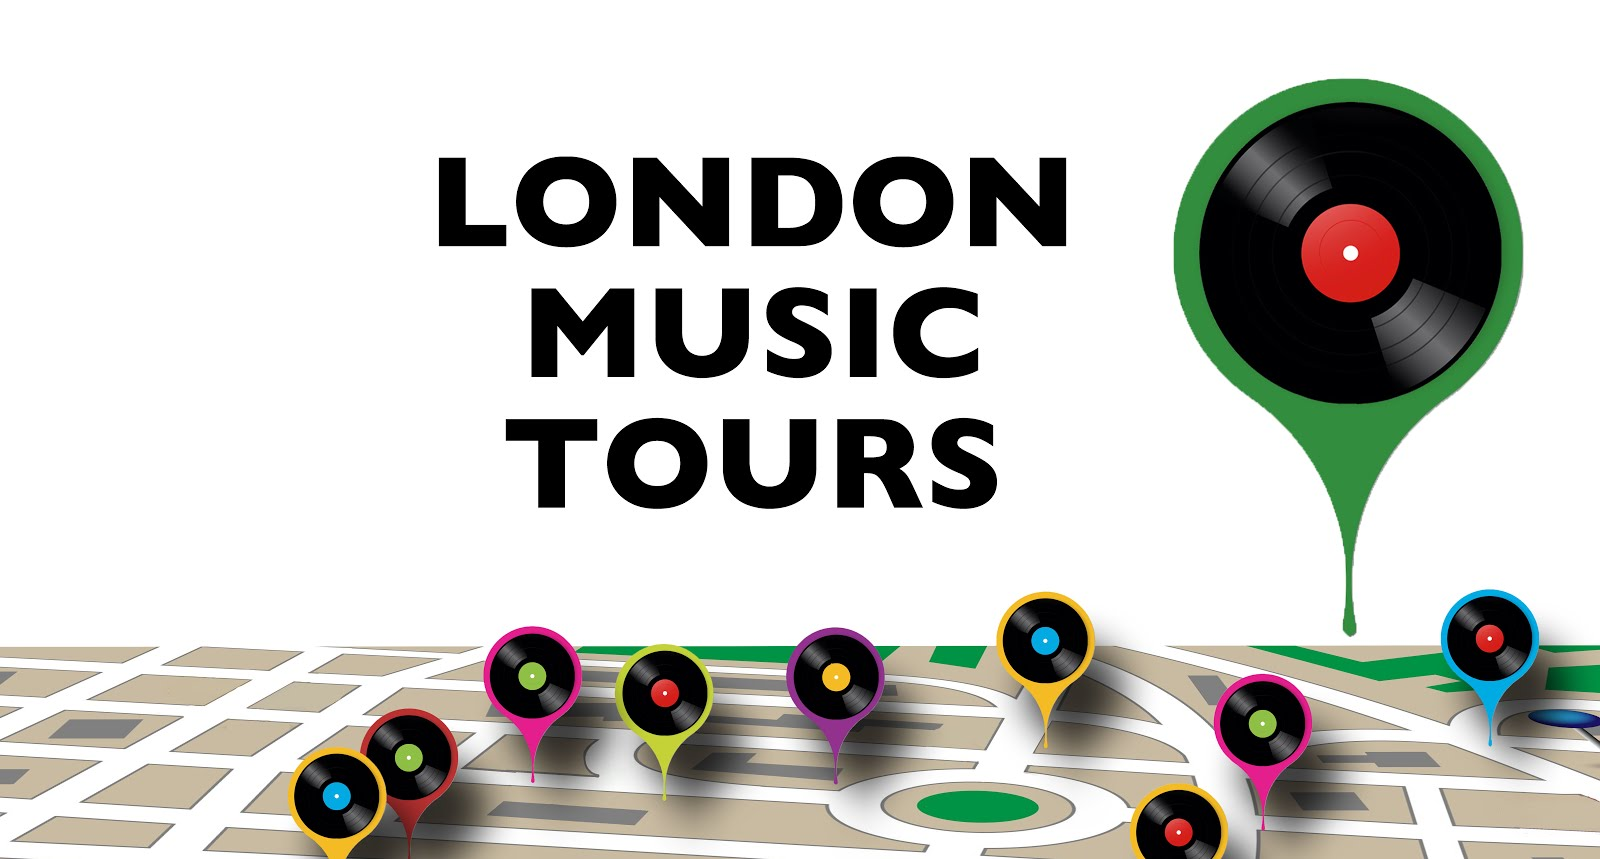 London Music Tours